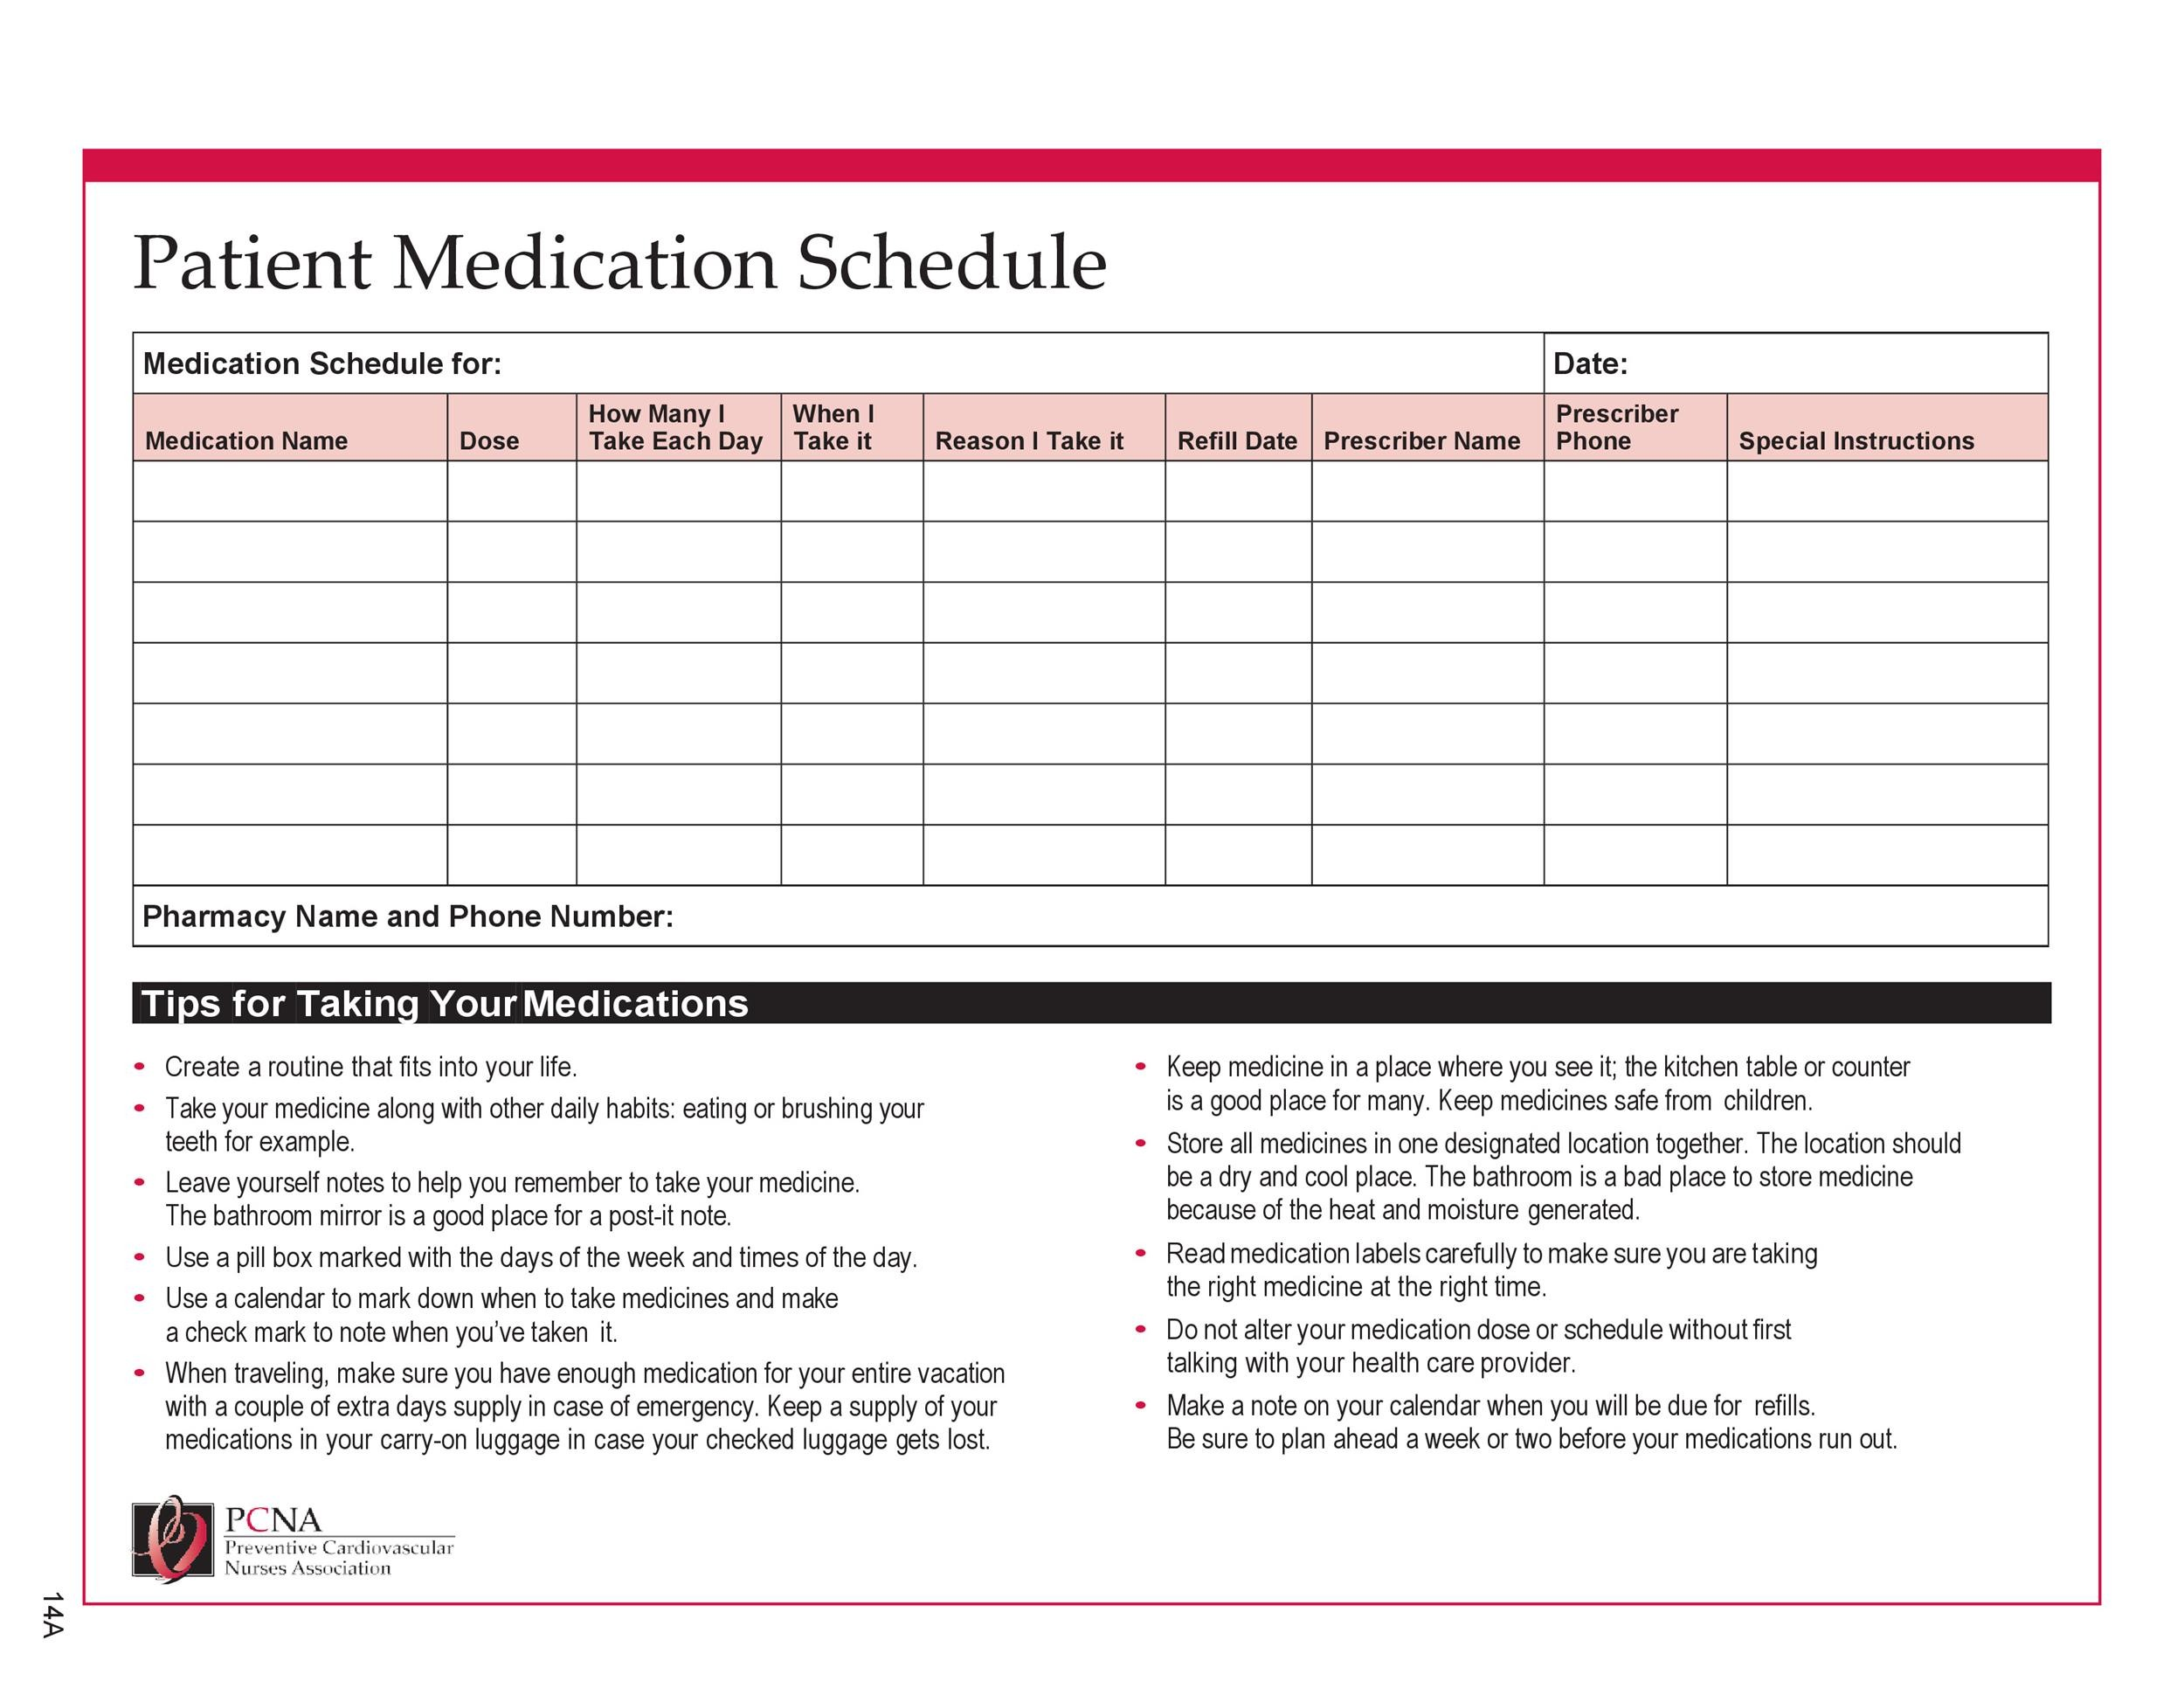 It is a picture of Free Printable Medication Tracker intended for tracking